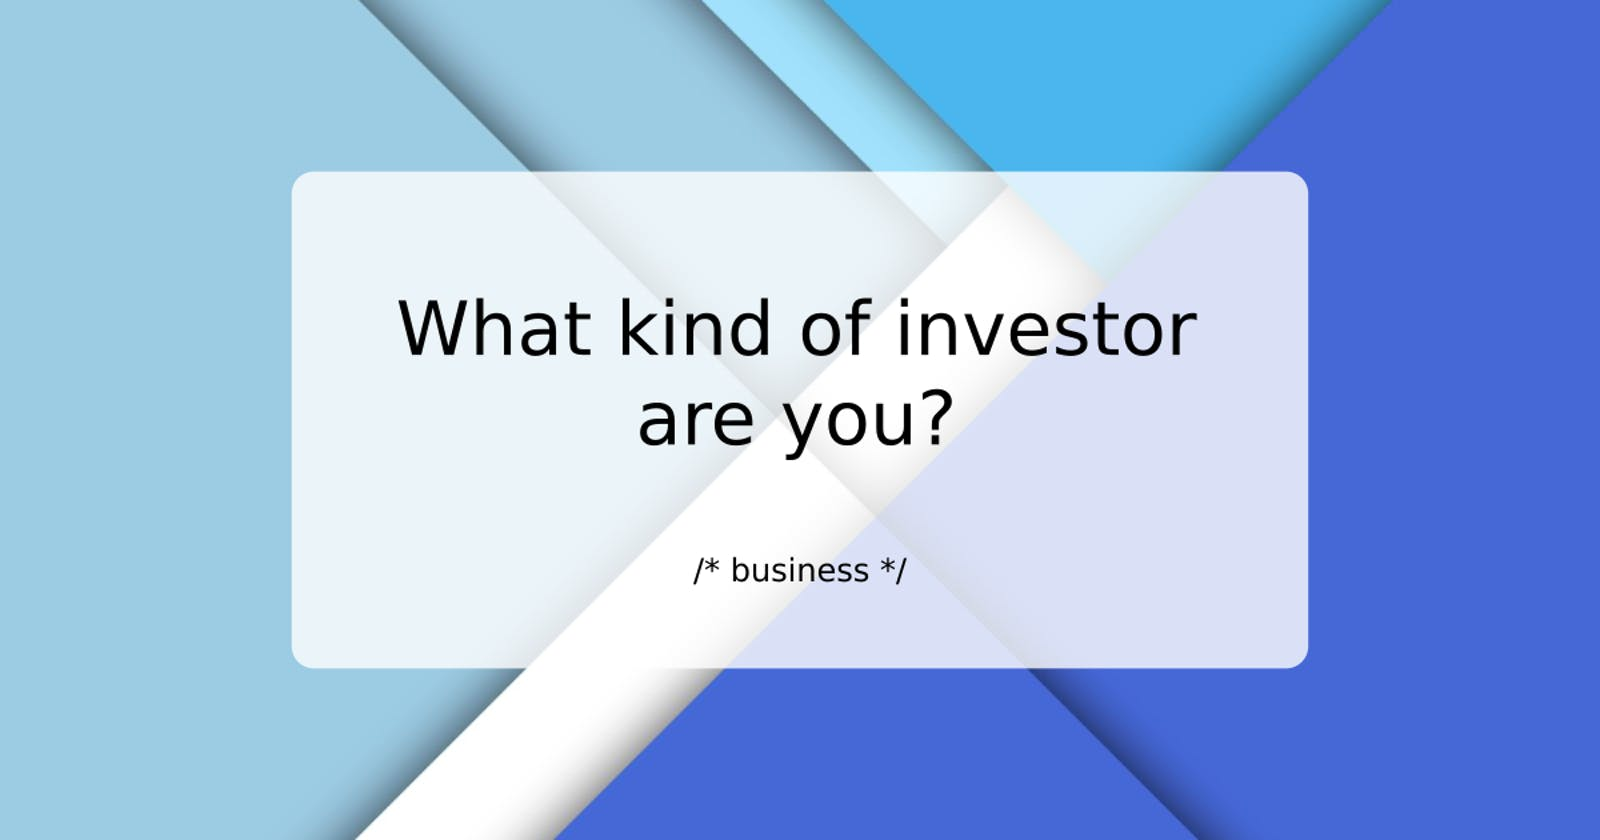 What kind of investor are you? Let's find out